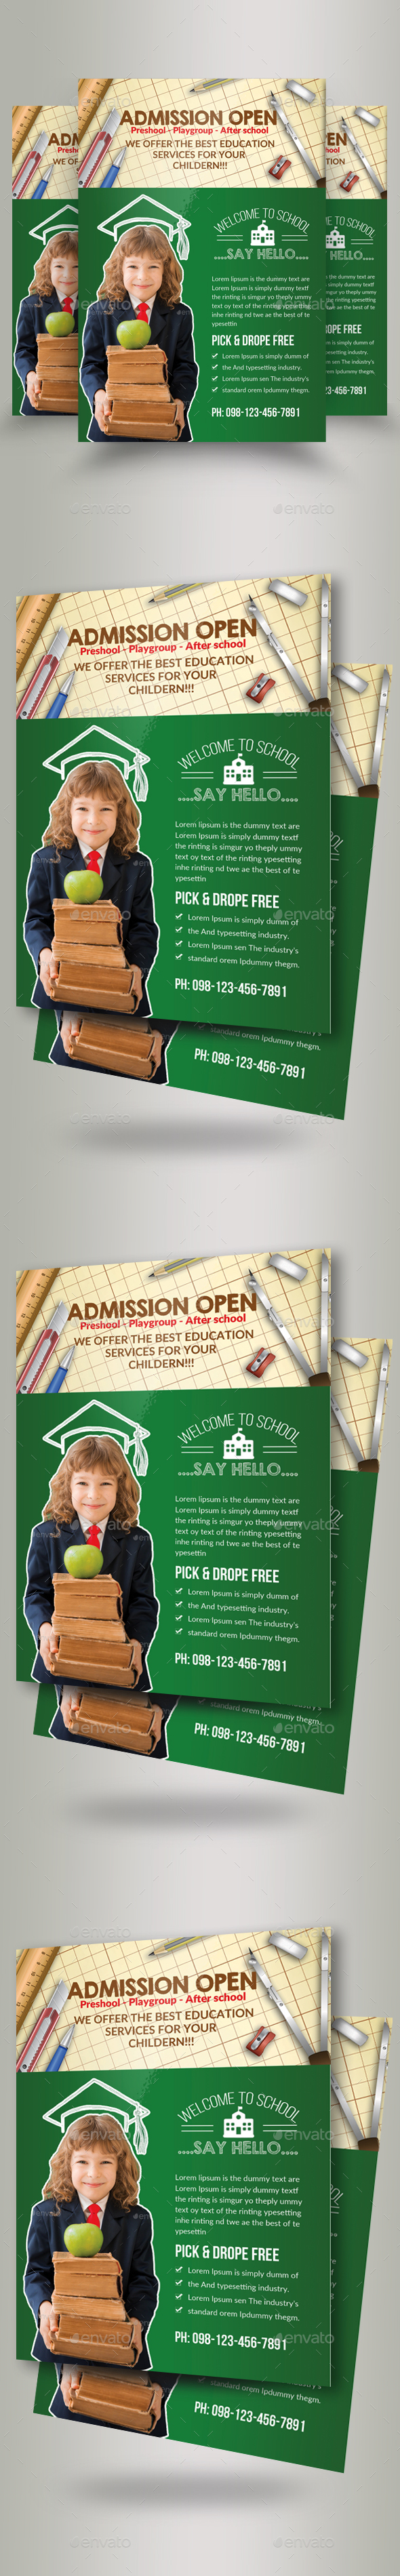 Admission Open School Flyers - Flyers Print Templates